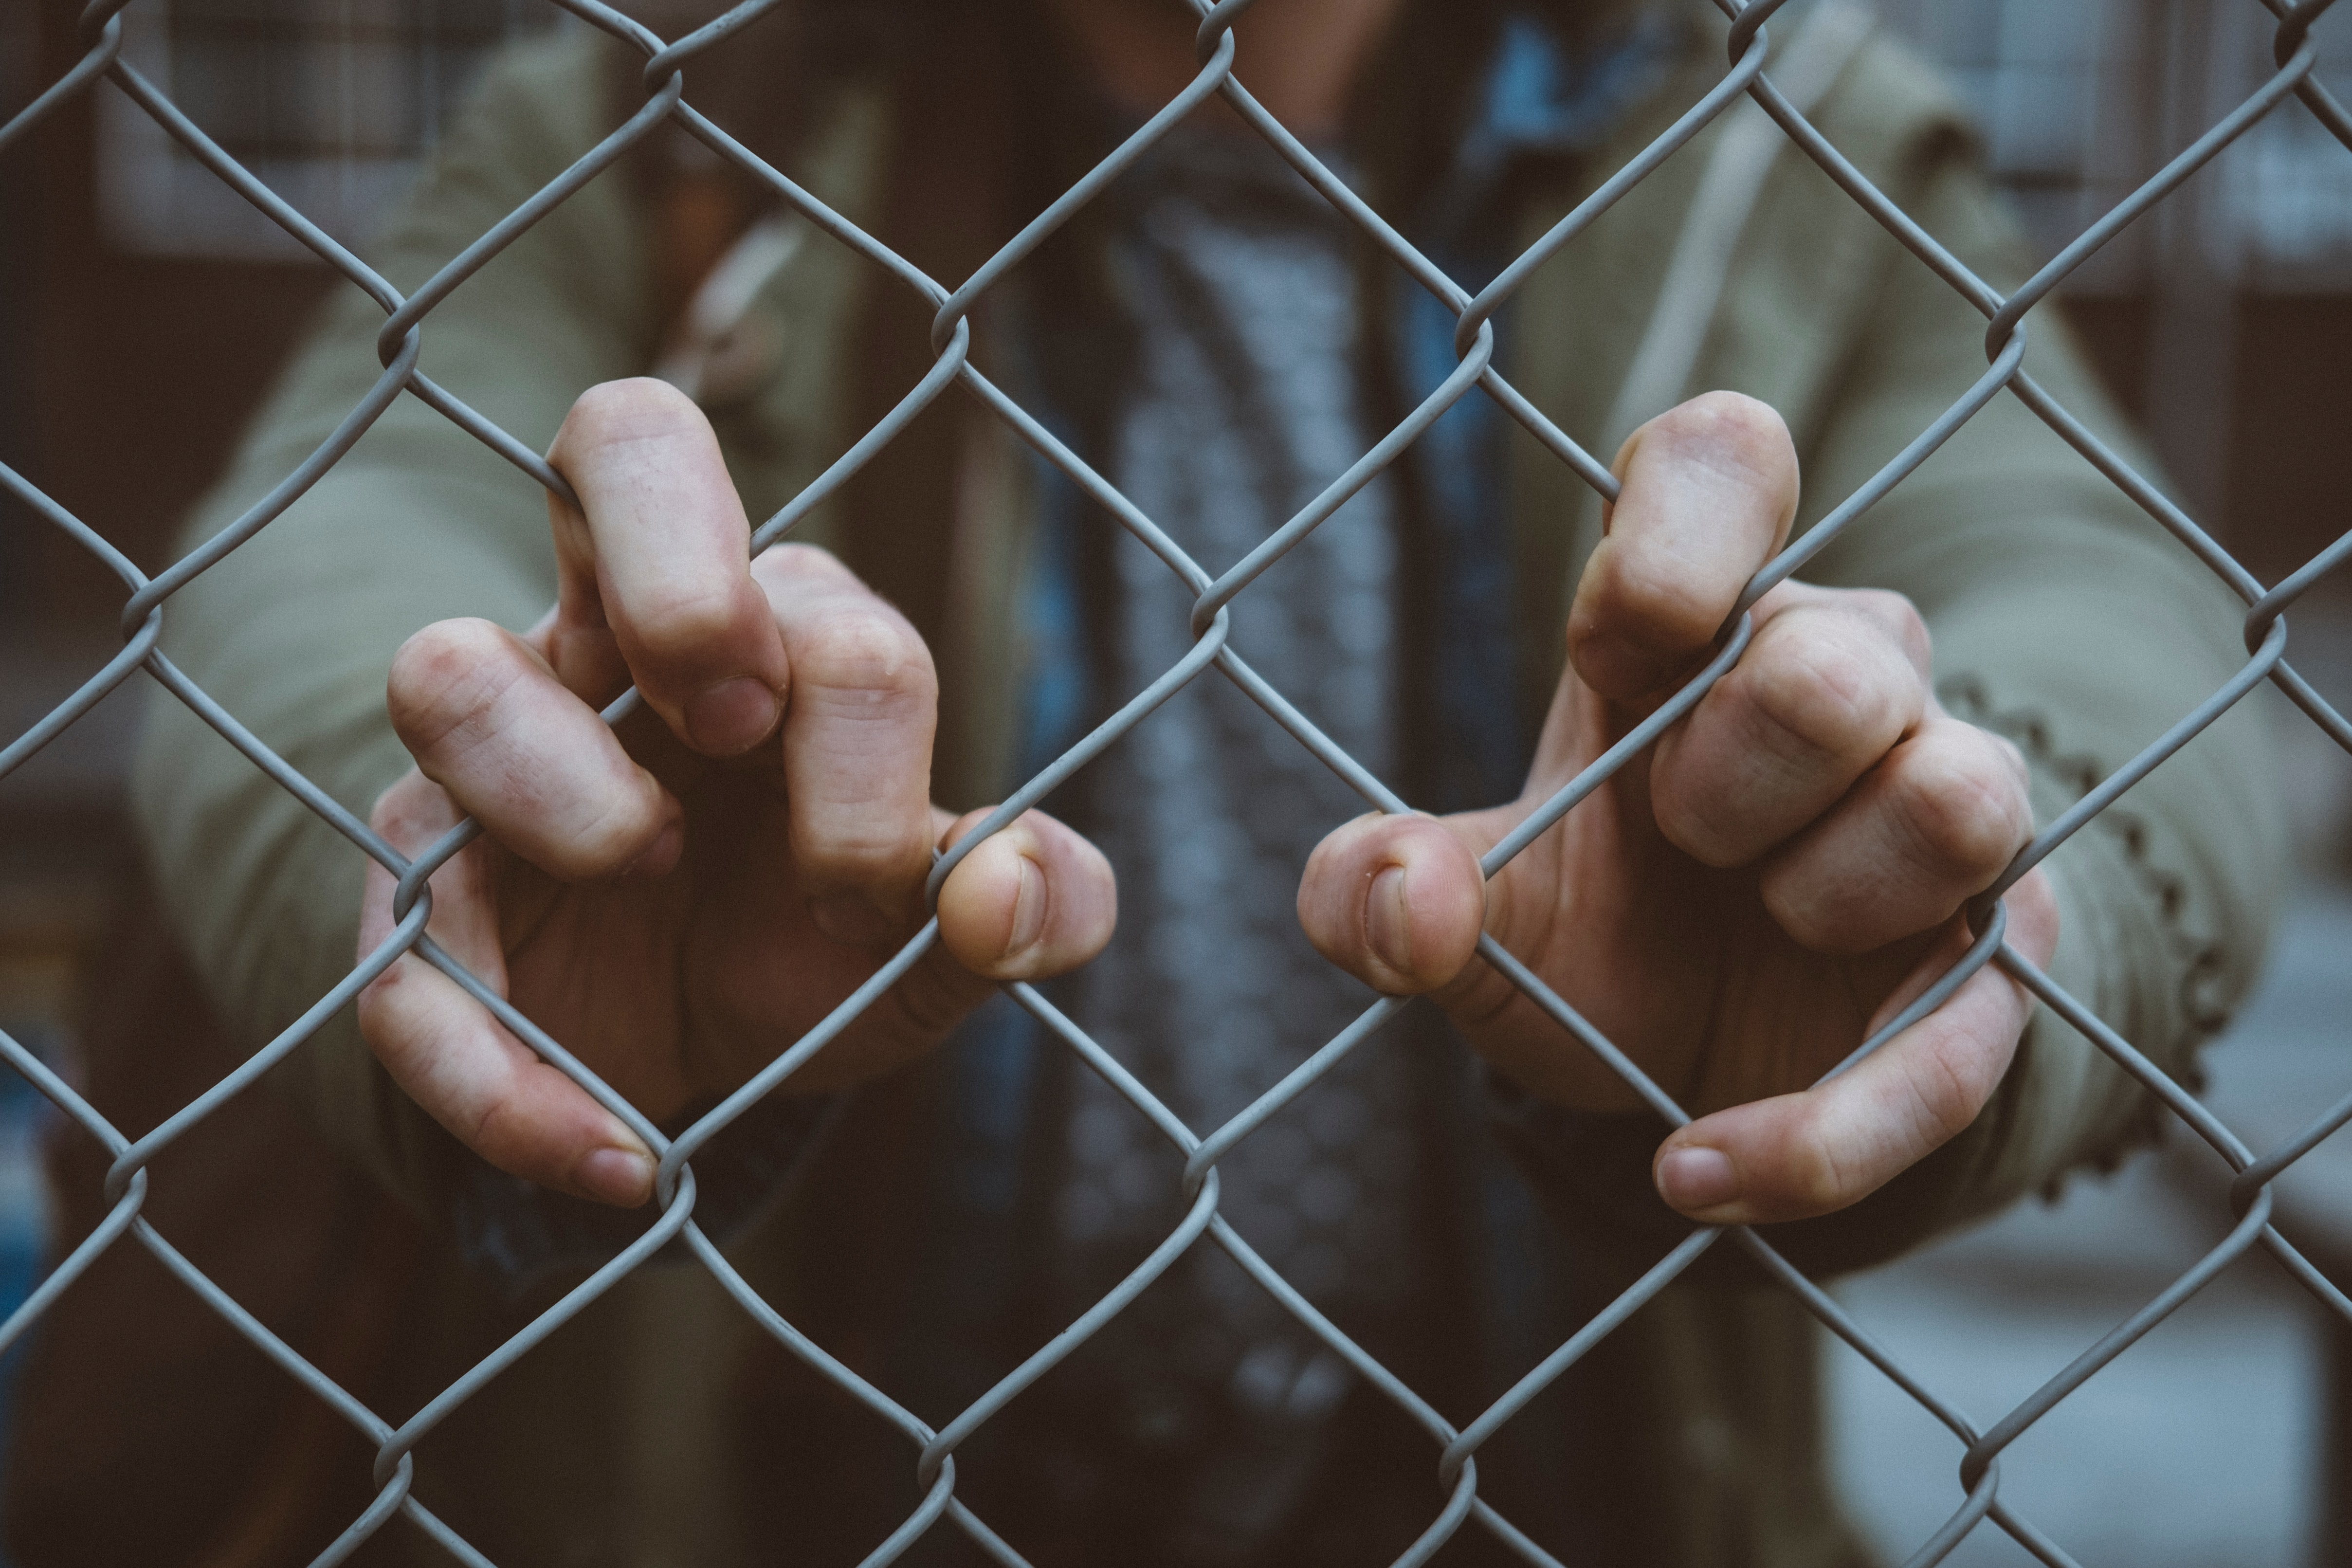 Photo: Hands holding a fence